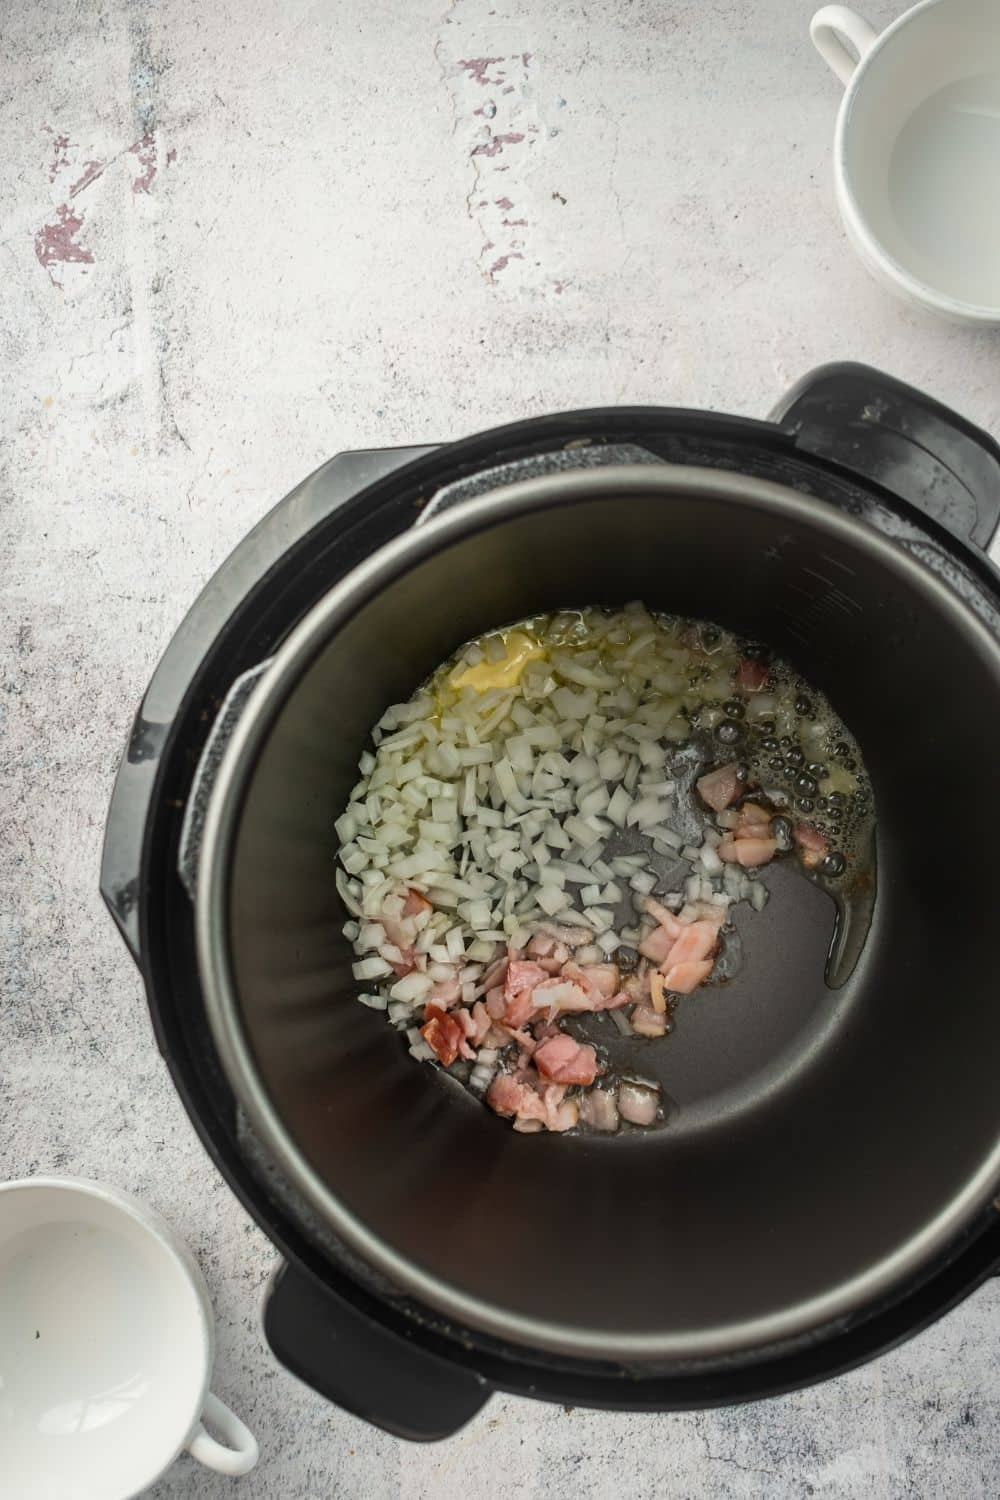 An instant pot on a white counter filled with onion and bacon bits in it.